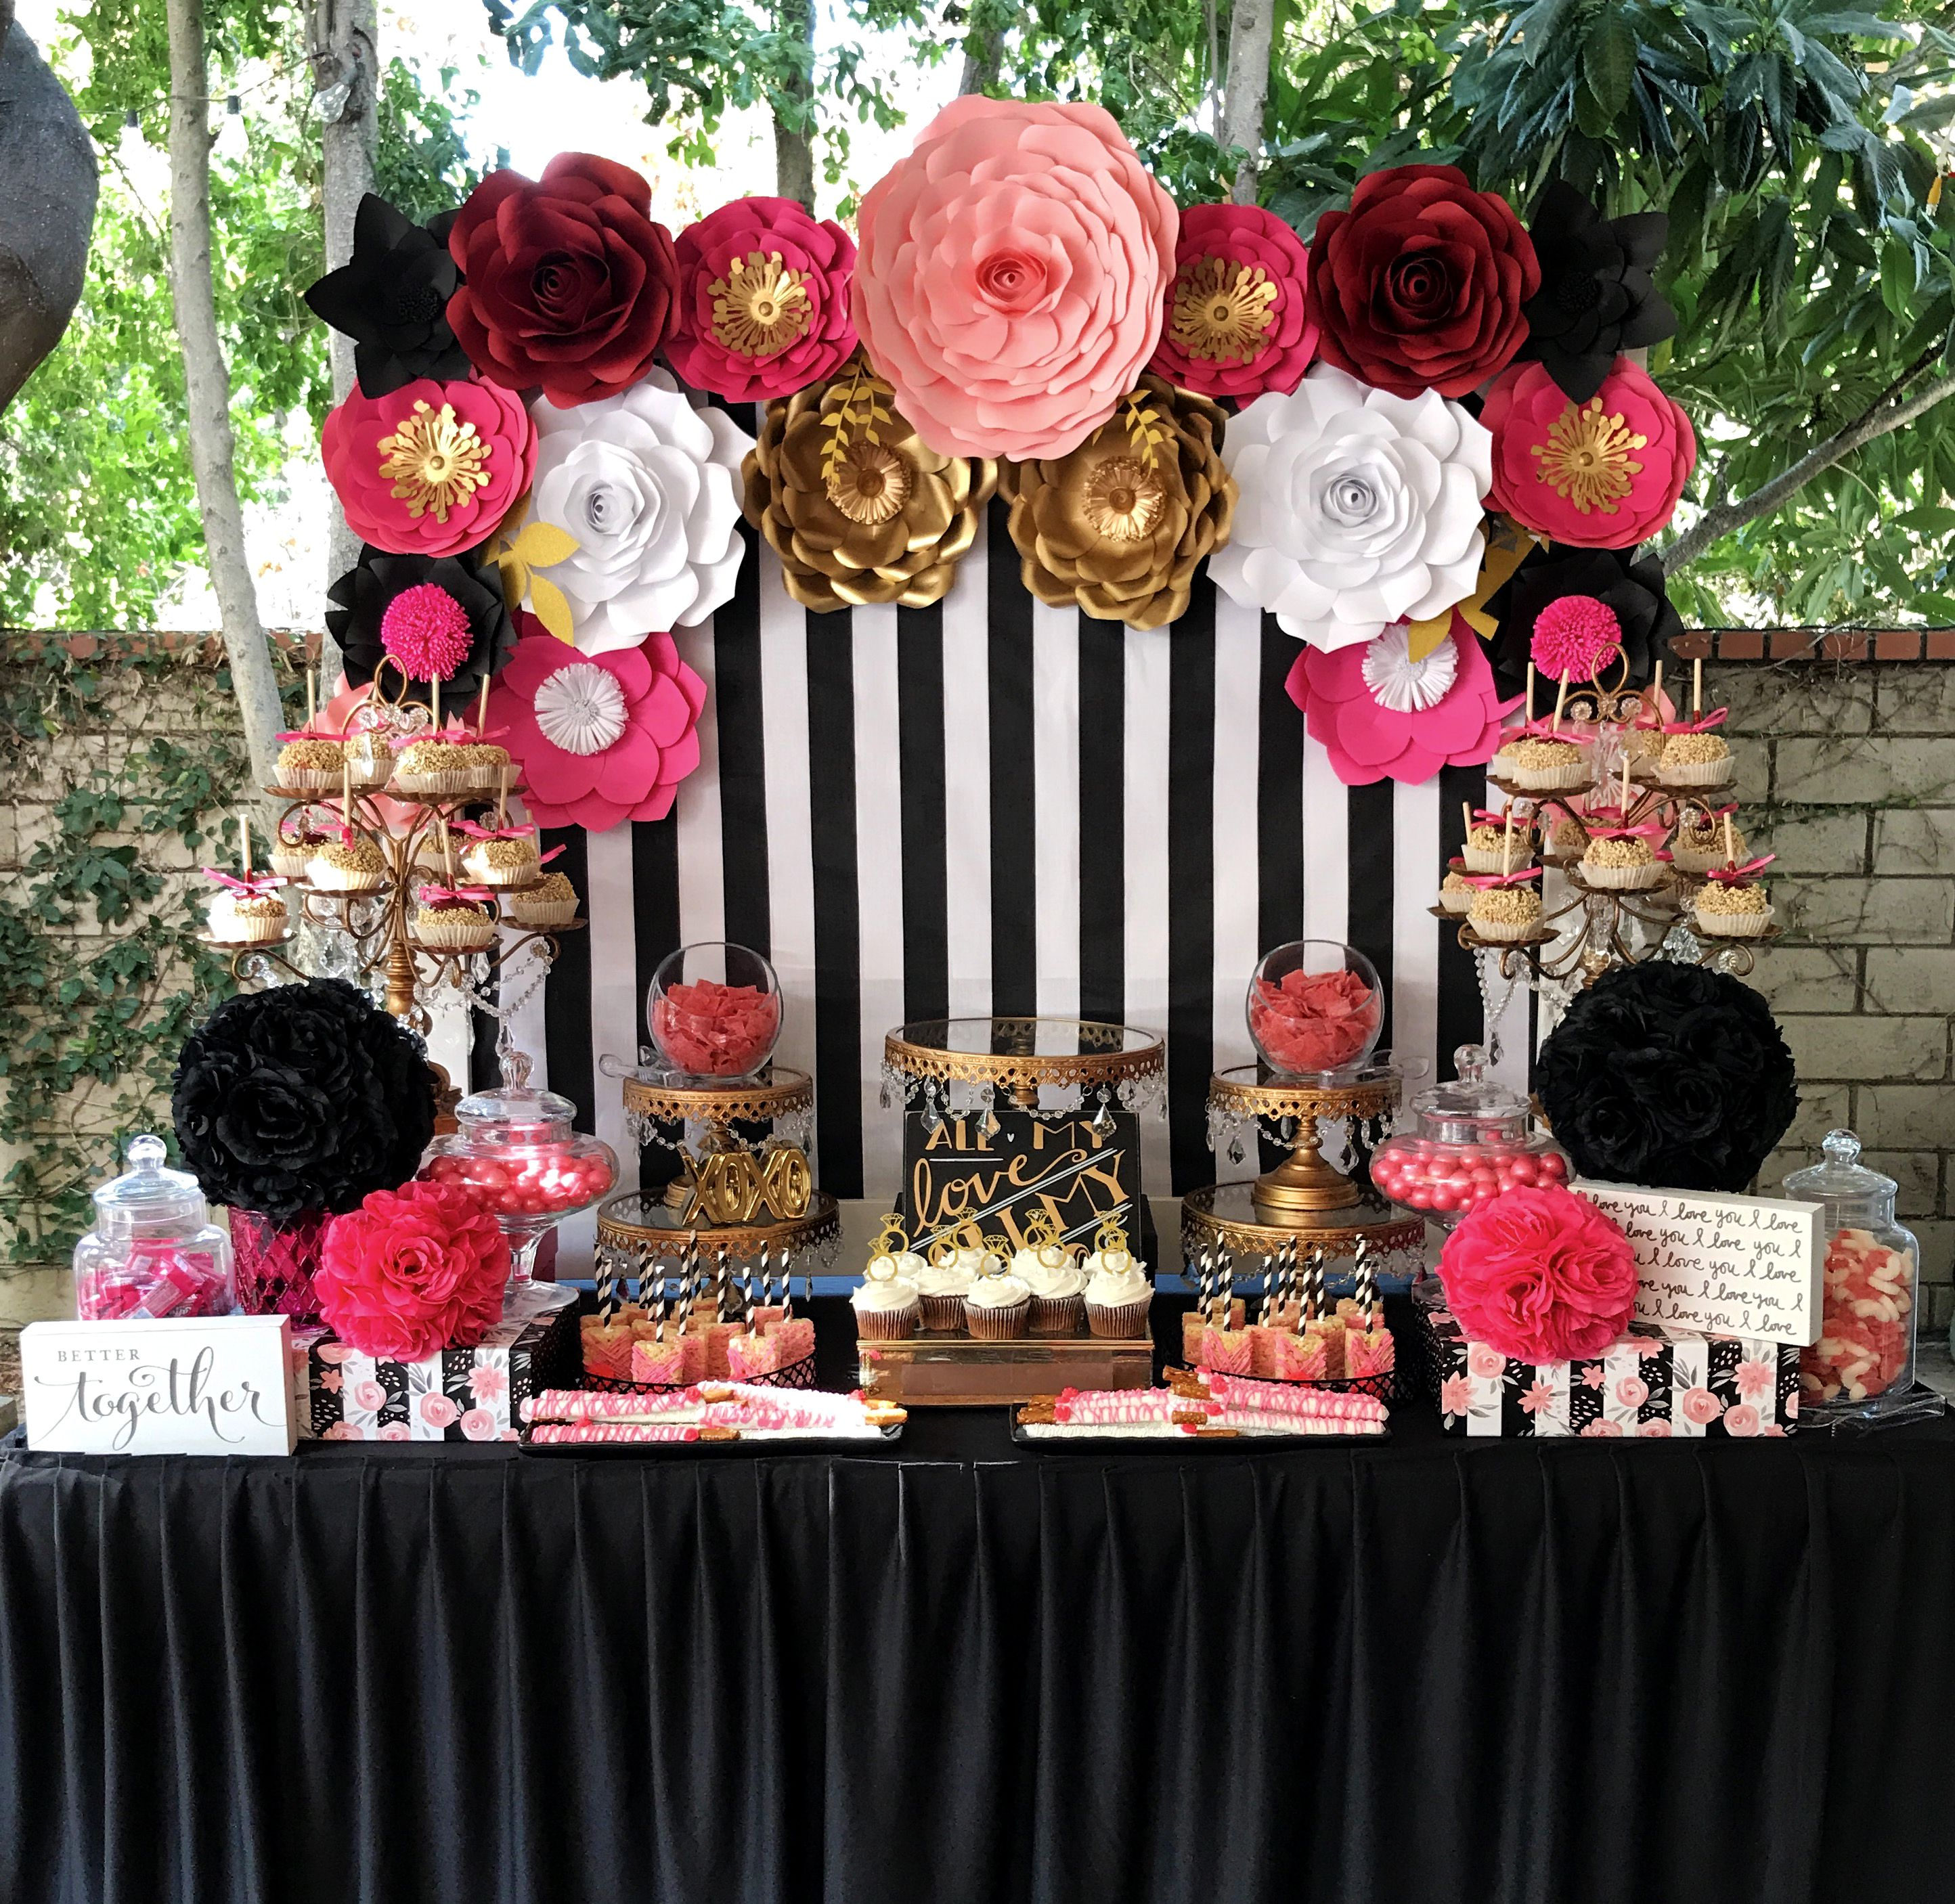 Diy Backdrop Stand For Dessert Table Kate Spade Pink And Black Dessert Table Paper Flower